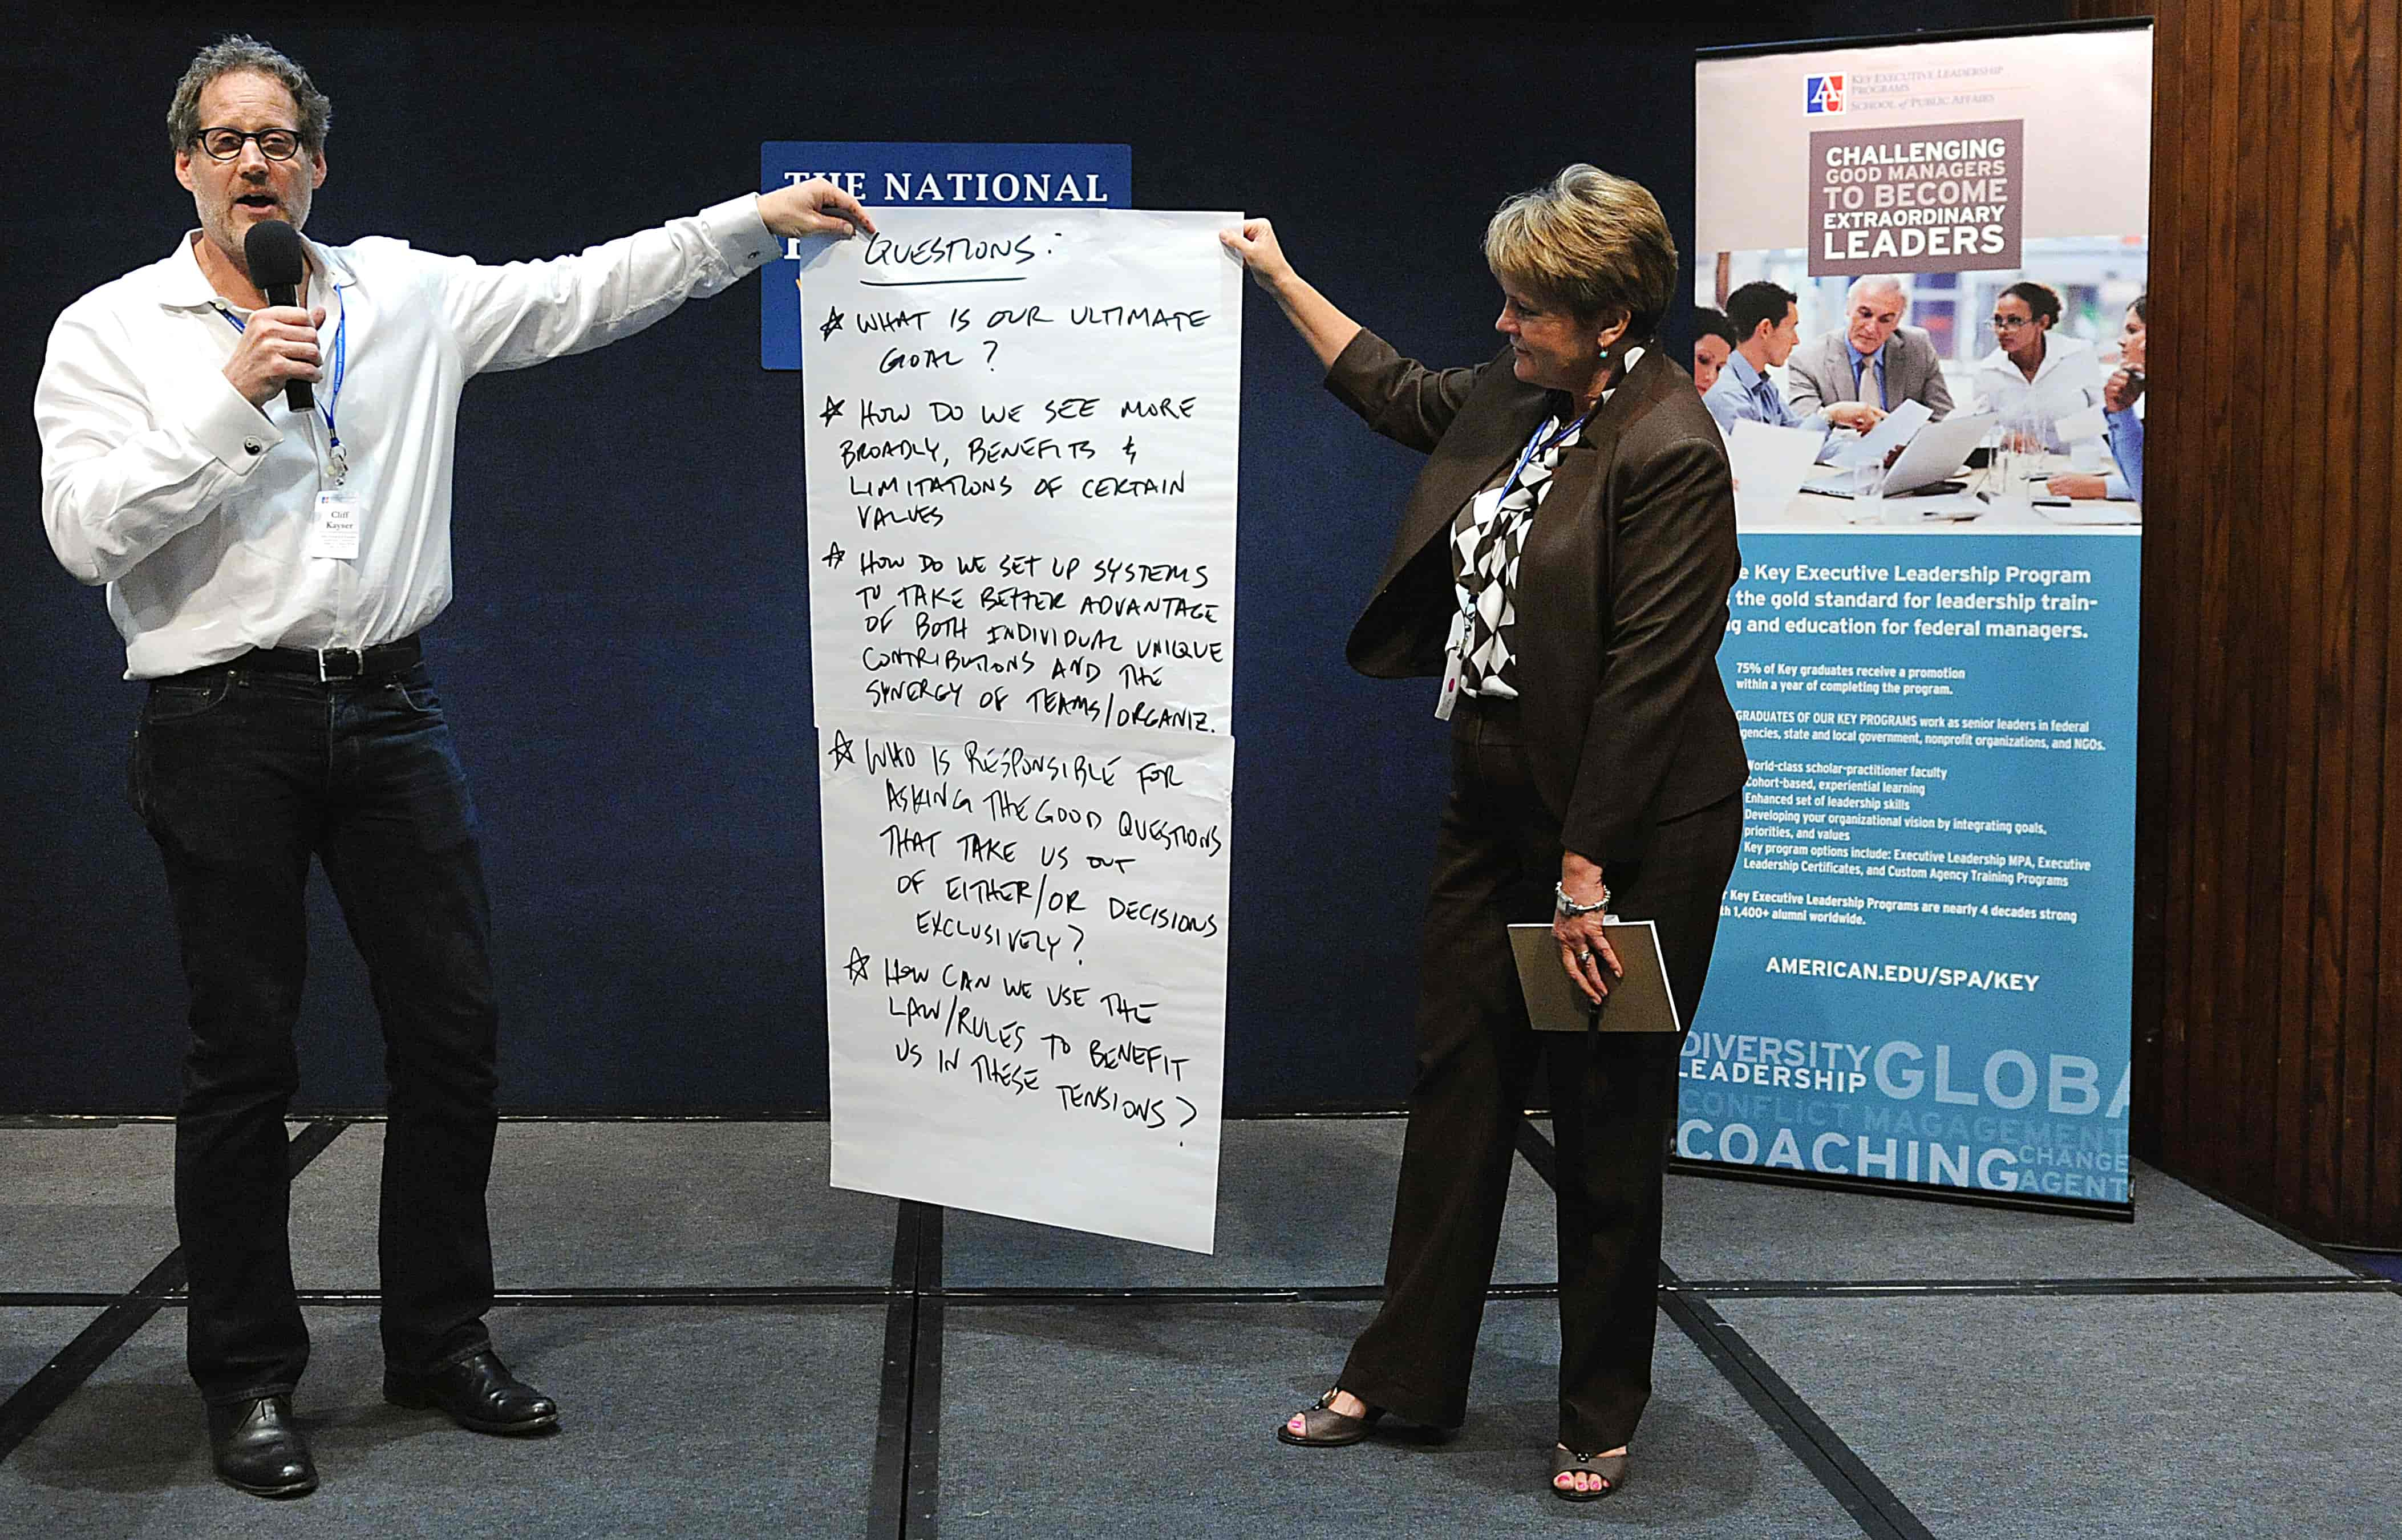 Two people hold a piece of paper that lists questions that will be answered during the conference.